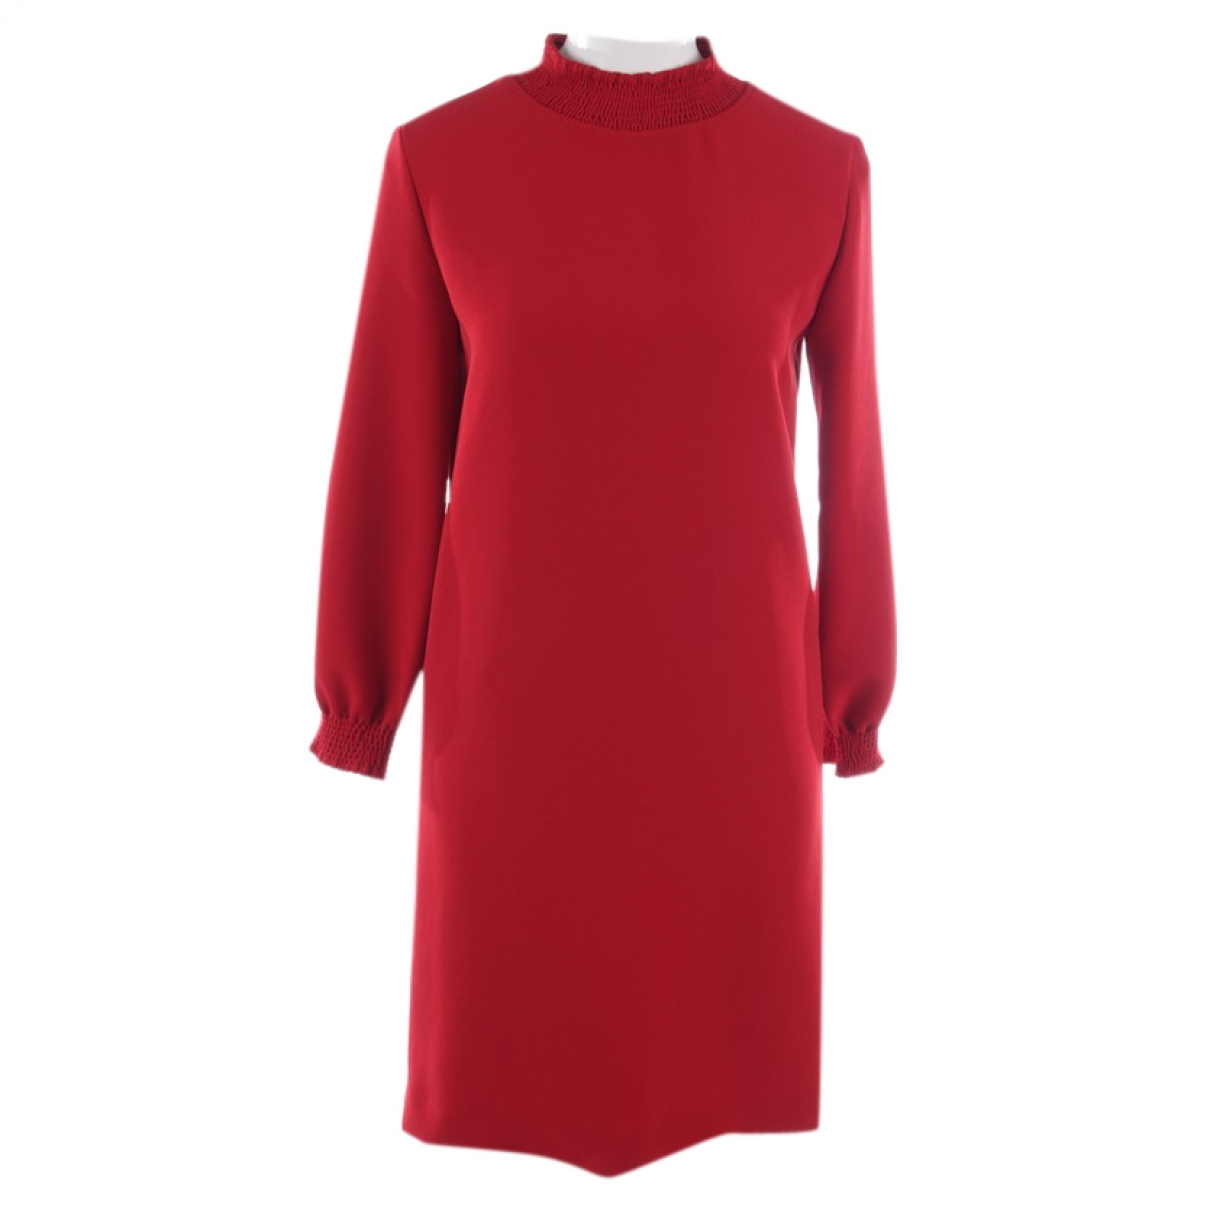 Apc \N Red Leather dress for Women 36 FR